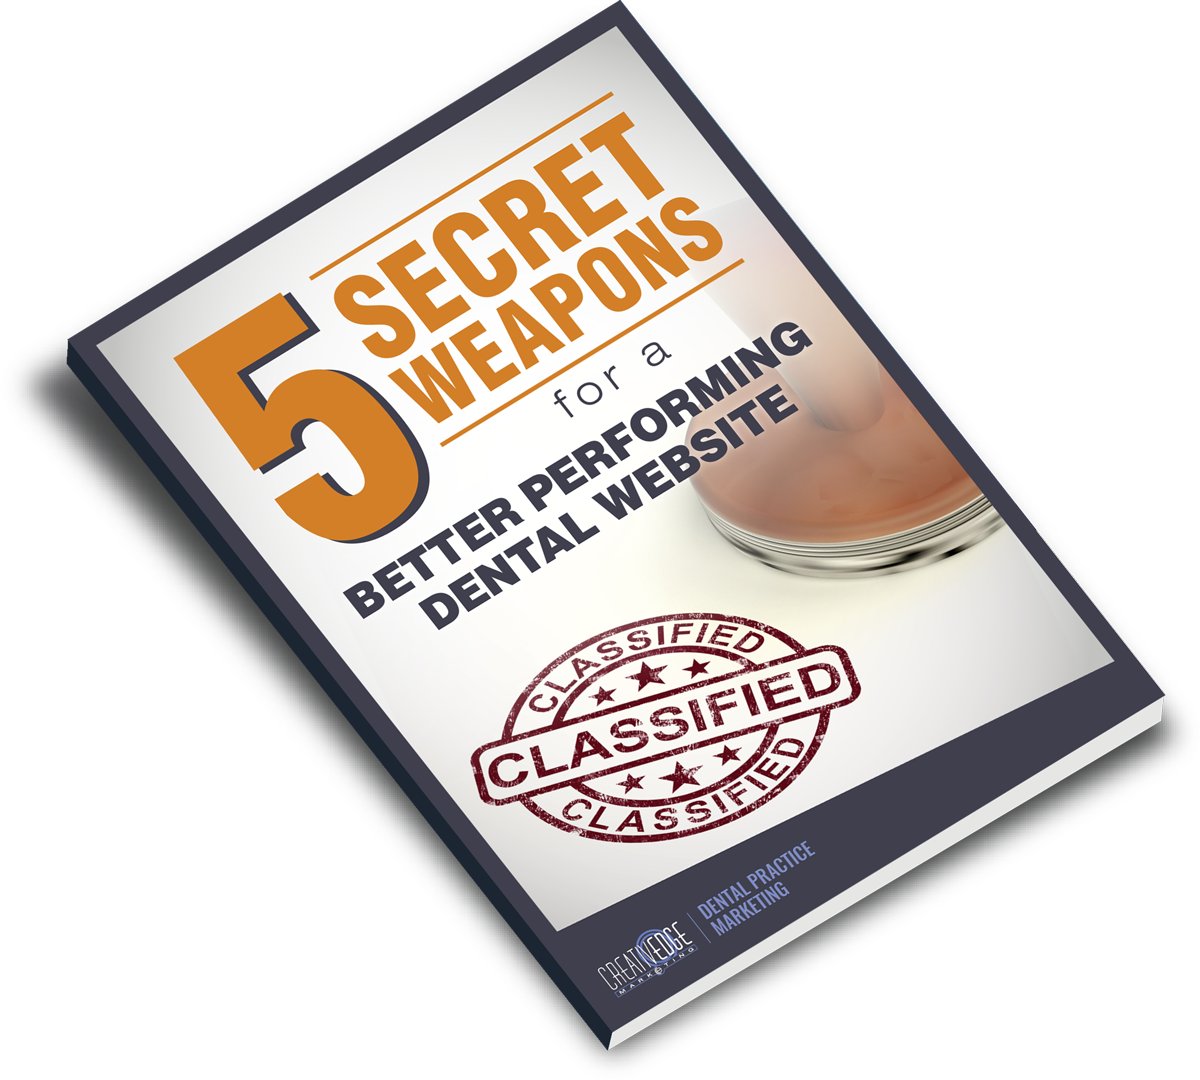 5 Secret Weapons for a Better Performing Dental Website